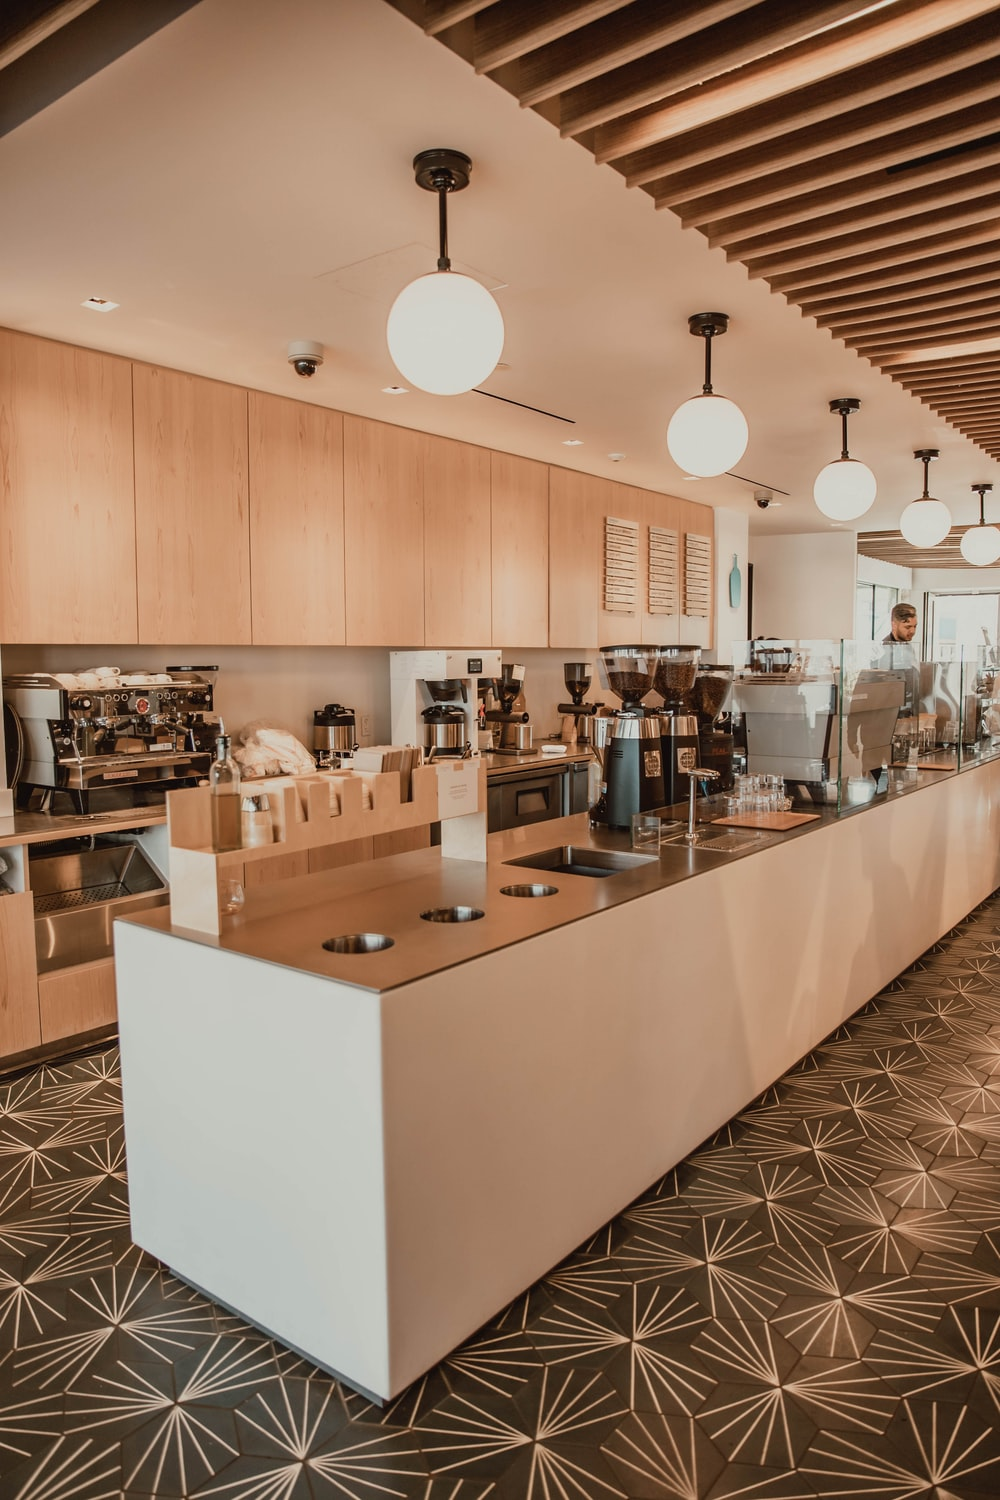 brown and white wooden kitchen counter